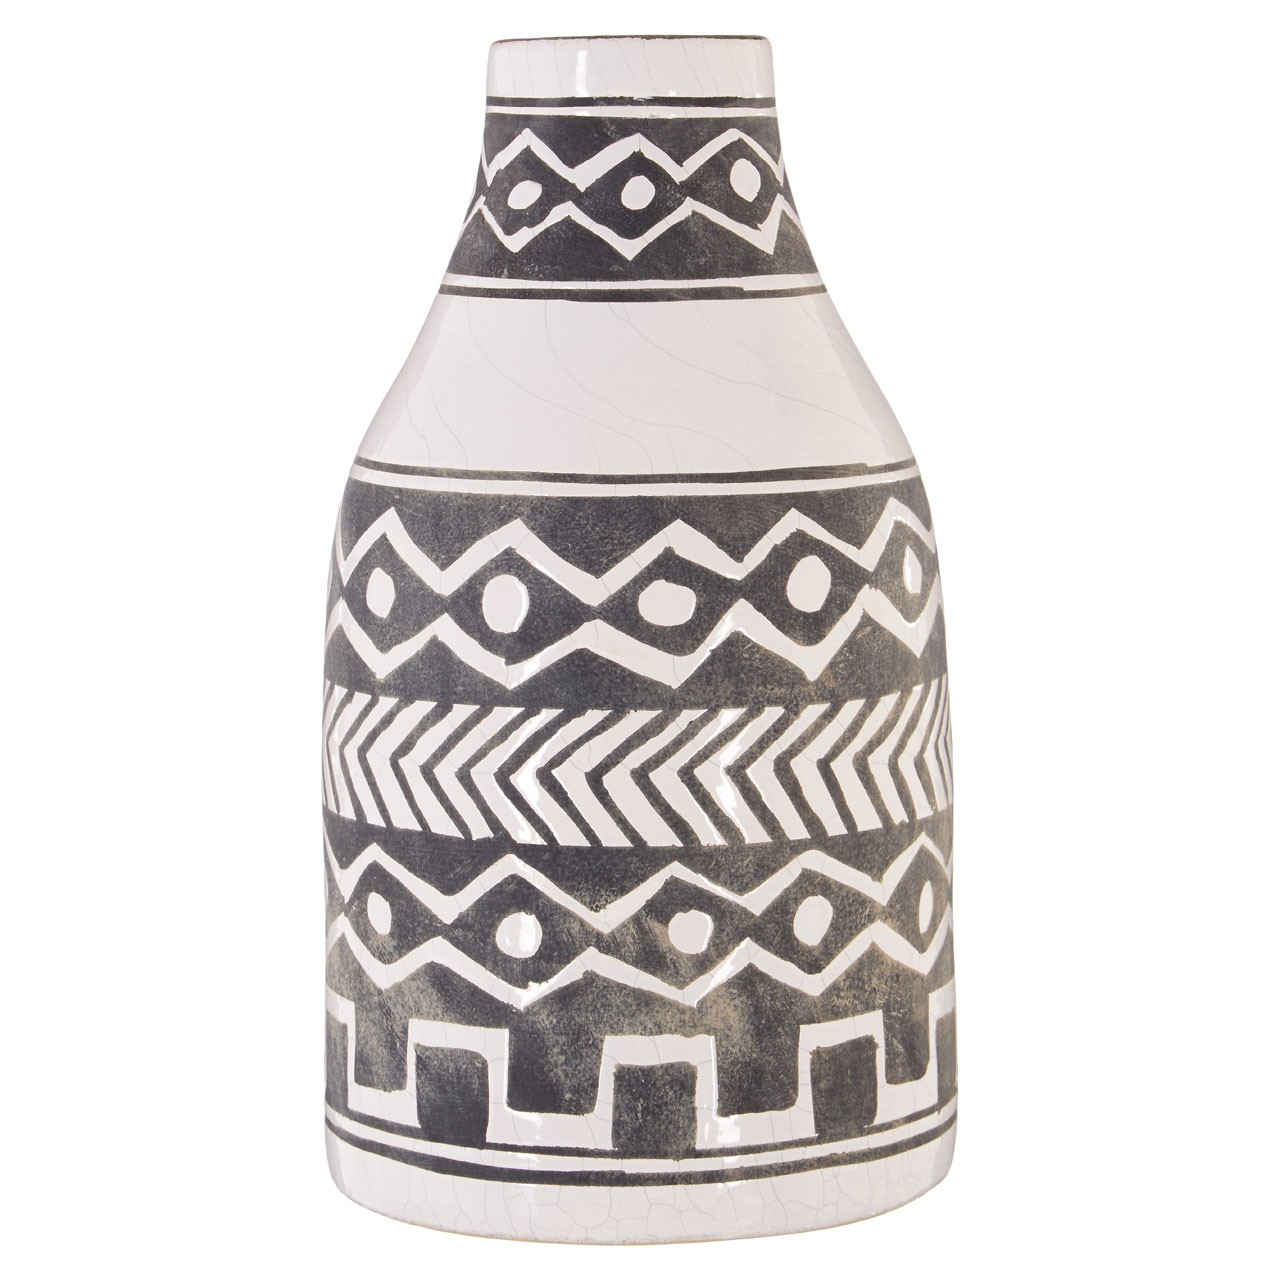 Complements Primo Mono Tribal-style Vase